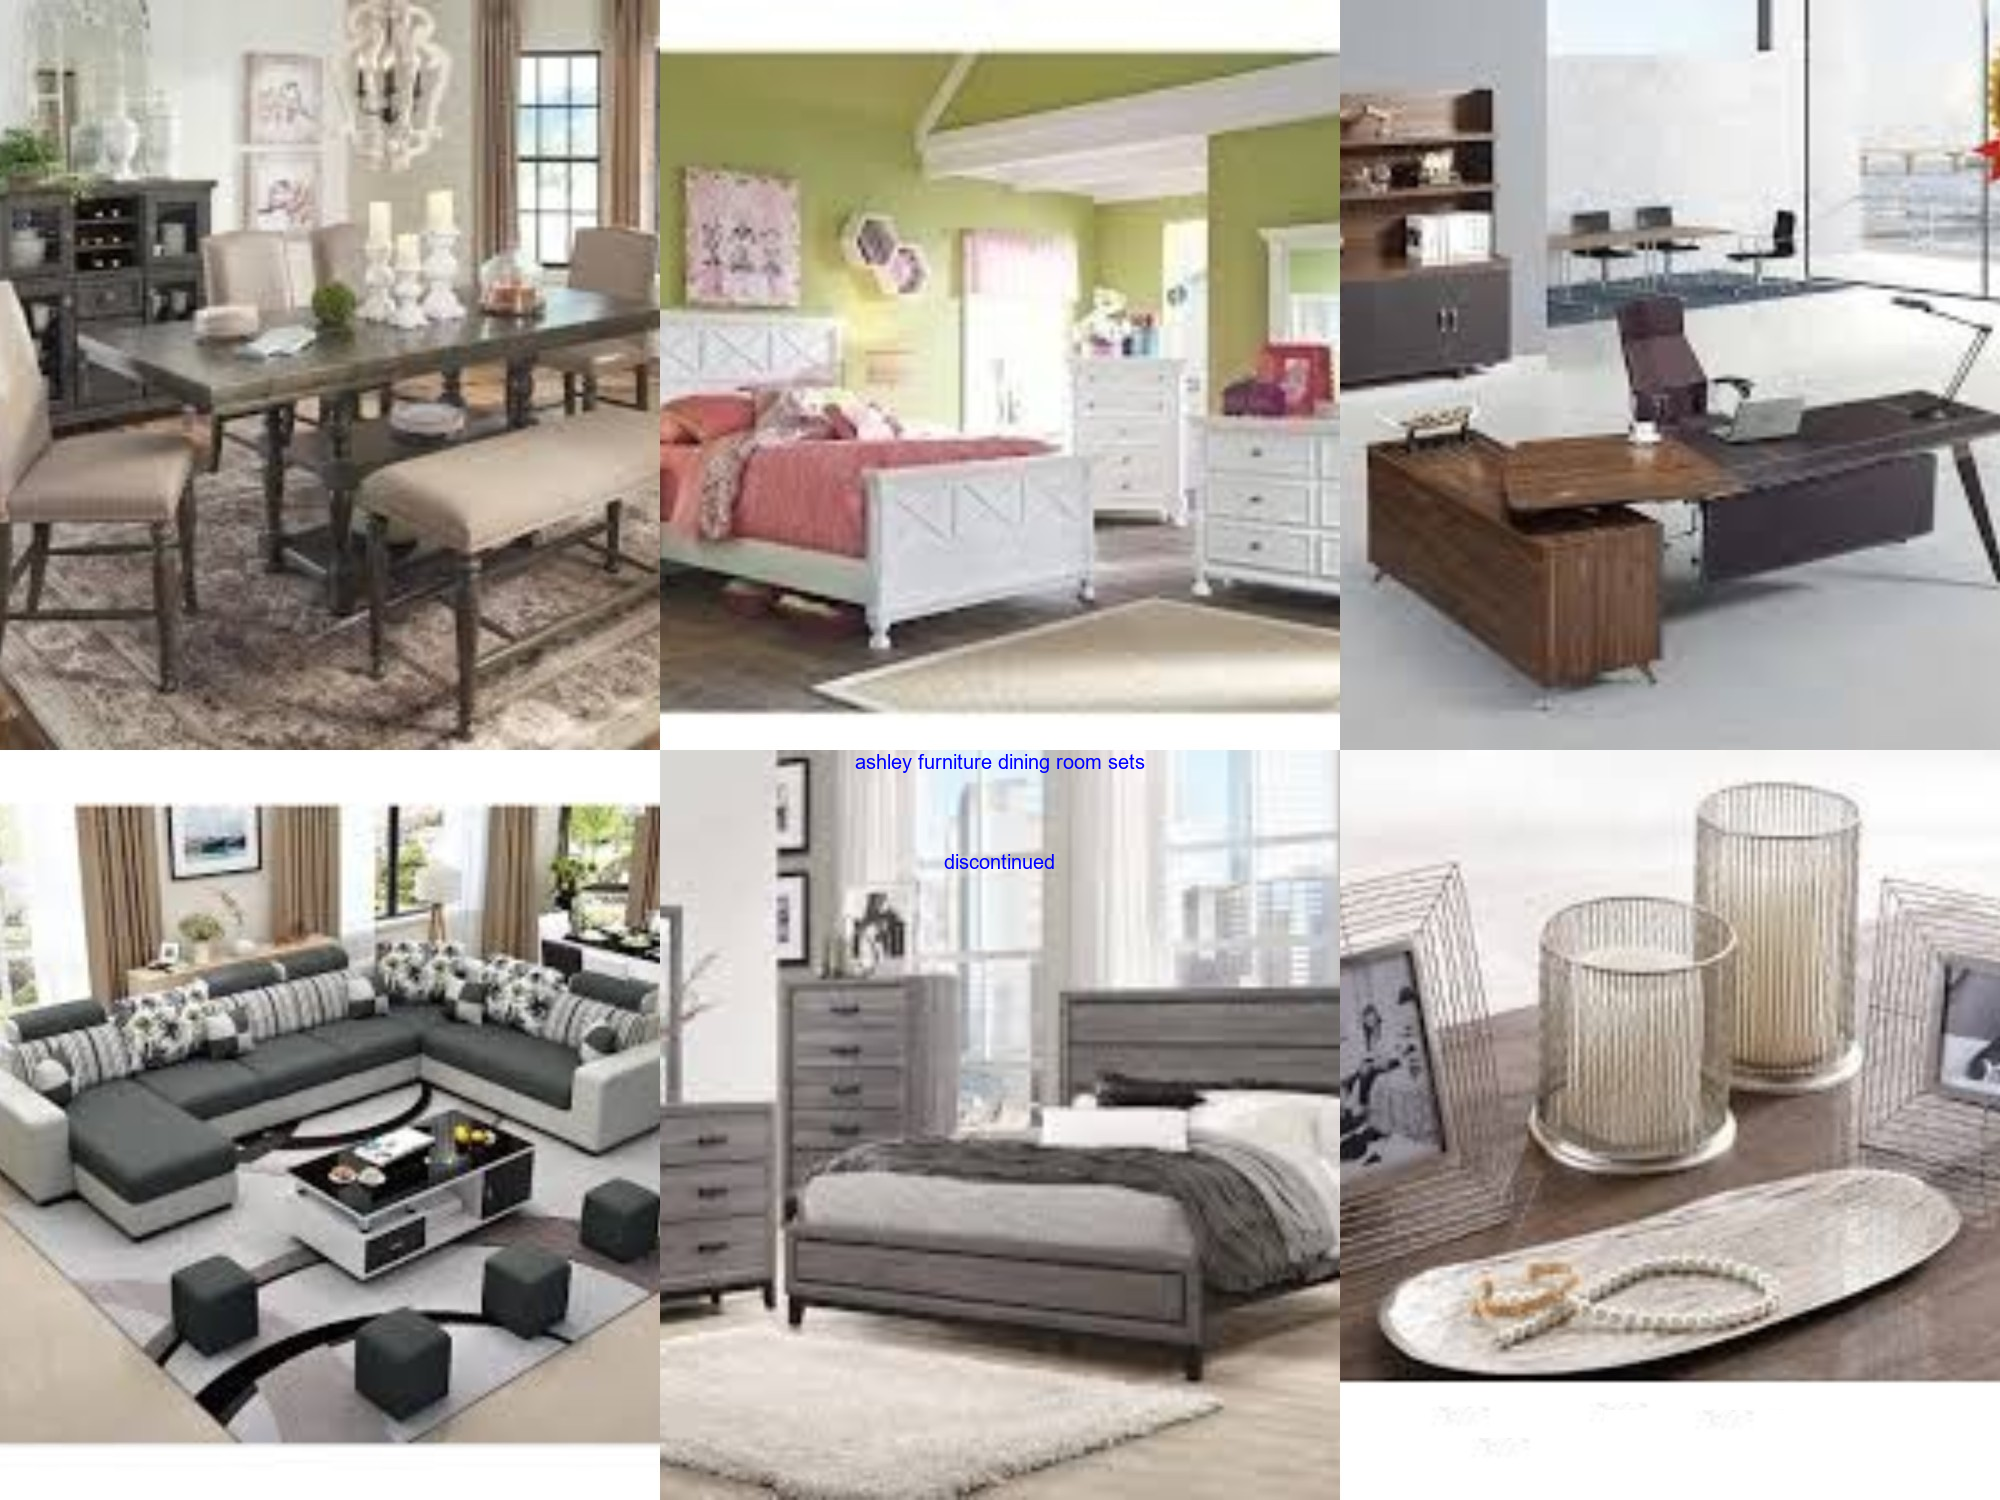 Pin On Ashley Furniture Dining Room Sets Discontinued